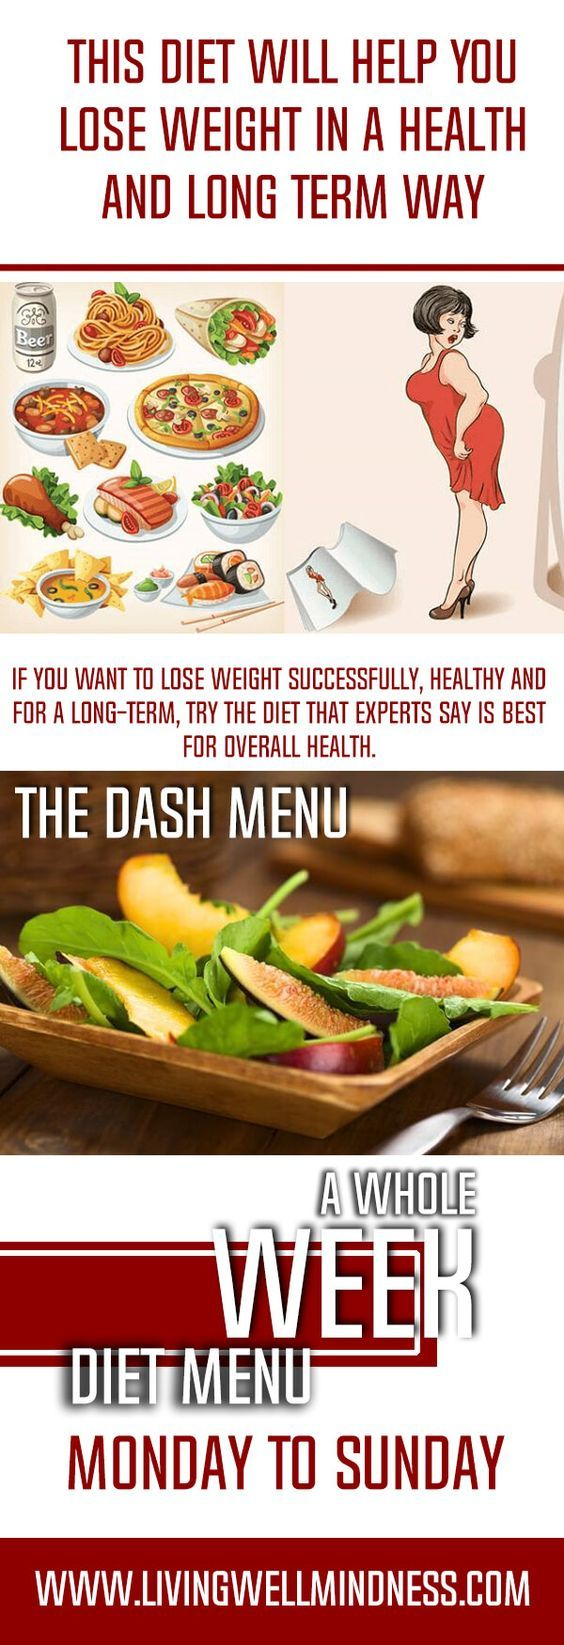 Dash diet dietary approaches to stop hypertension is the name for a type of